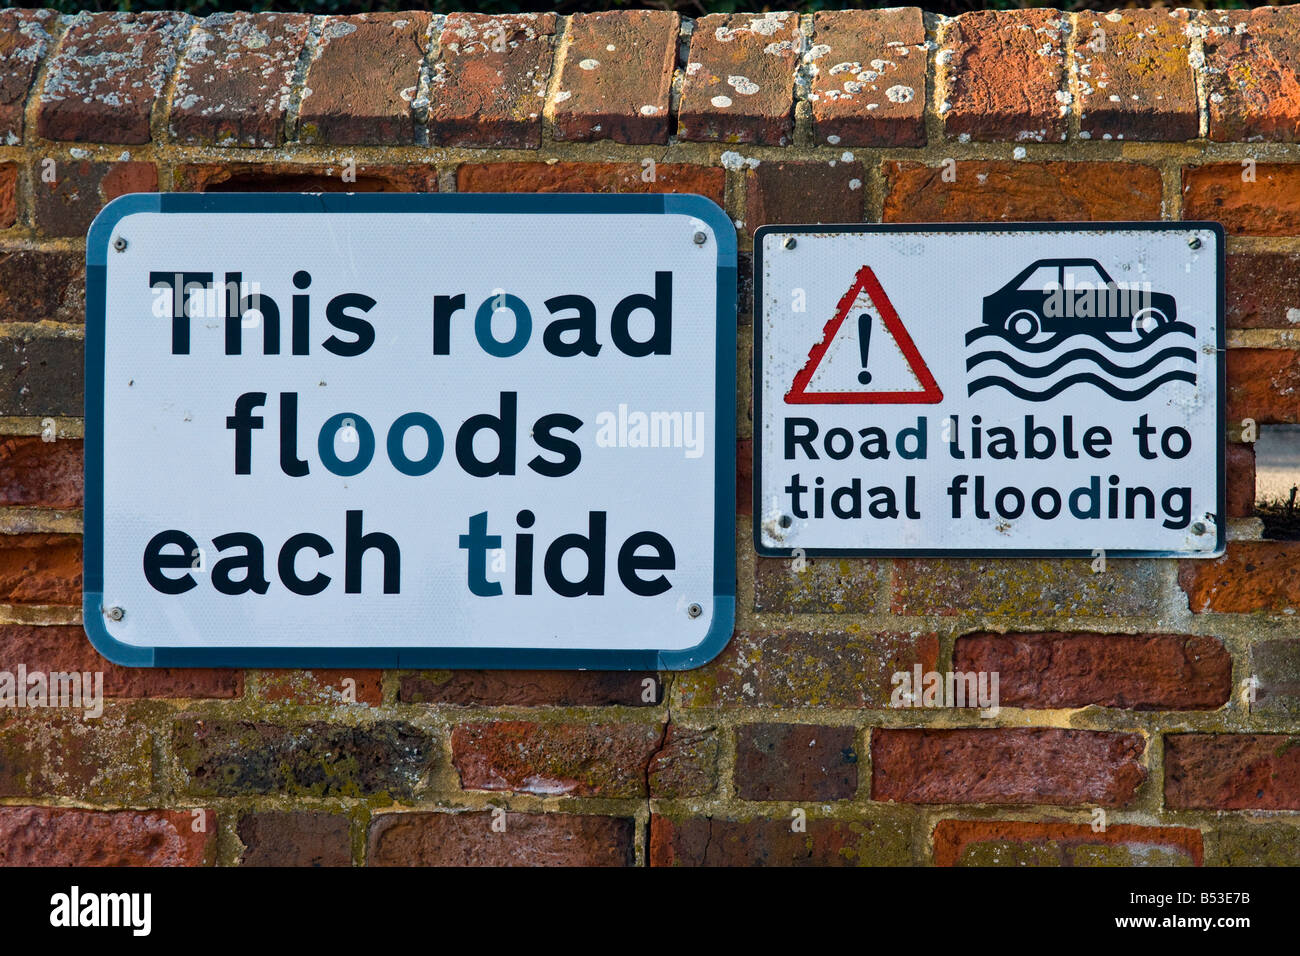 Amusing road signs - This road floods each tide & Road liable to tidal flooding - well , make up your mind Council Stock Photo